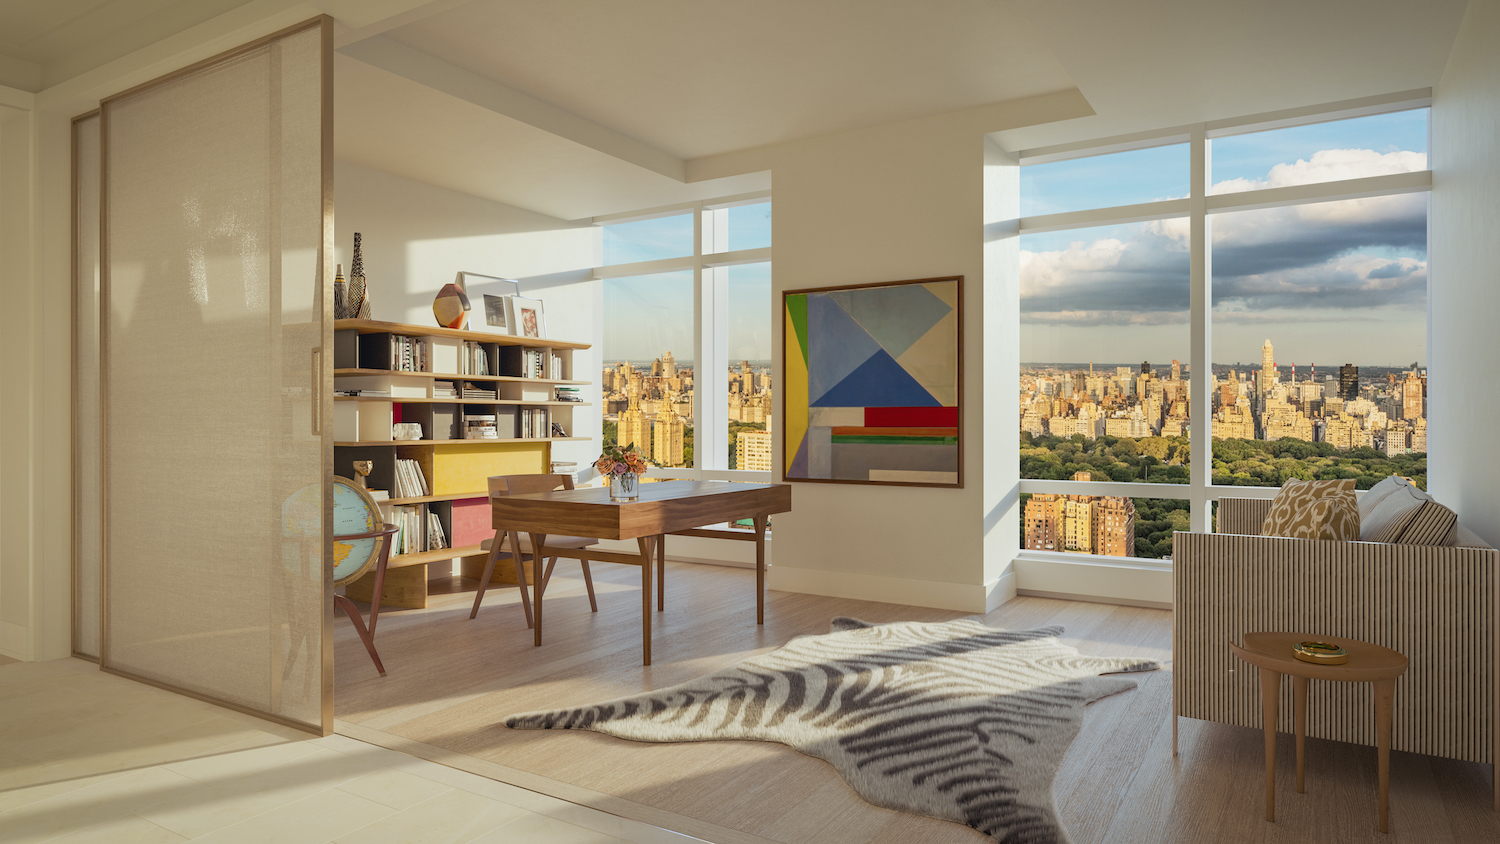 Penthouse study at 200 Amsterdam on the Upper West Side